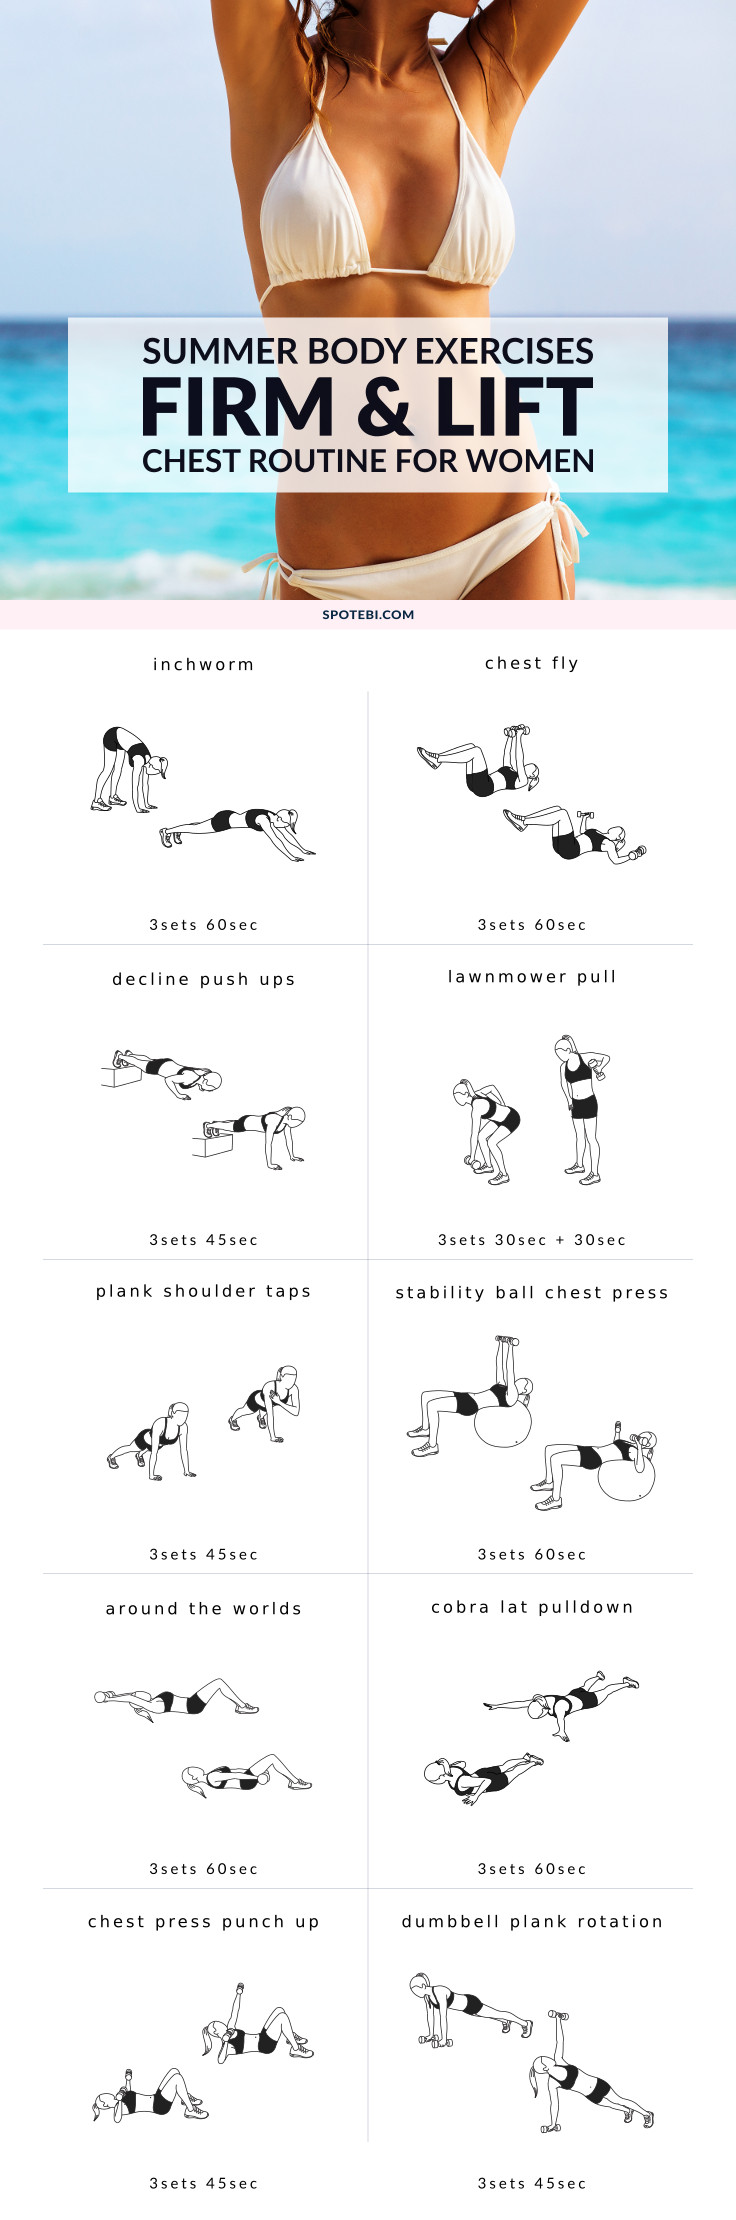 Firm your breasts and give your bust line a lift with this killer chest workout for women. 10 at-home moves to strengthen your pec muscles and help you enhance your cleavage, just in time for summer! https://www.spotebi.com/workout-routines/firm-and-lift-your-breasts-chest-workout-for-women/